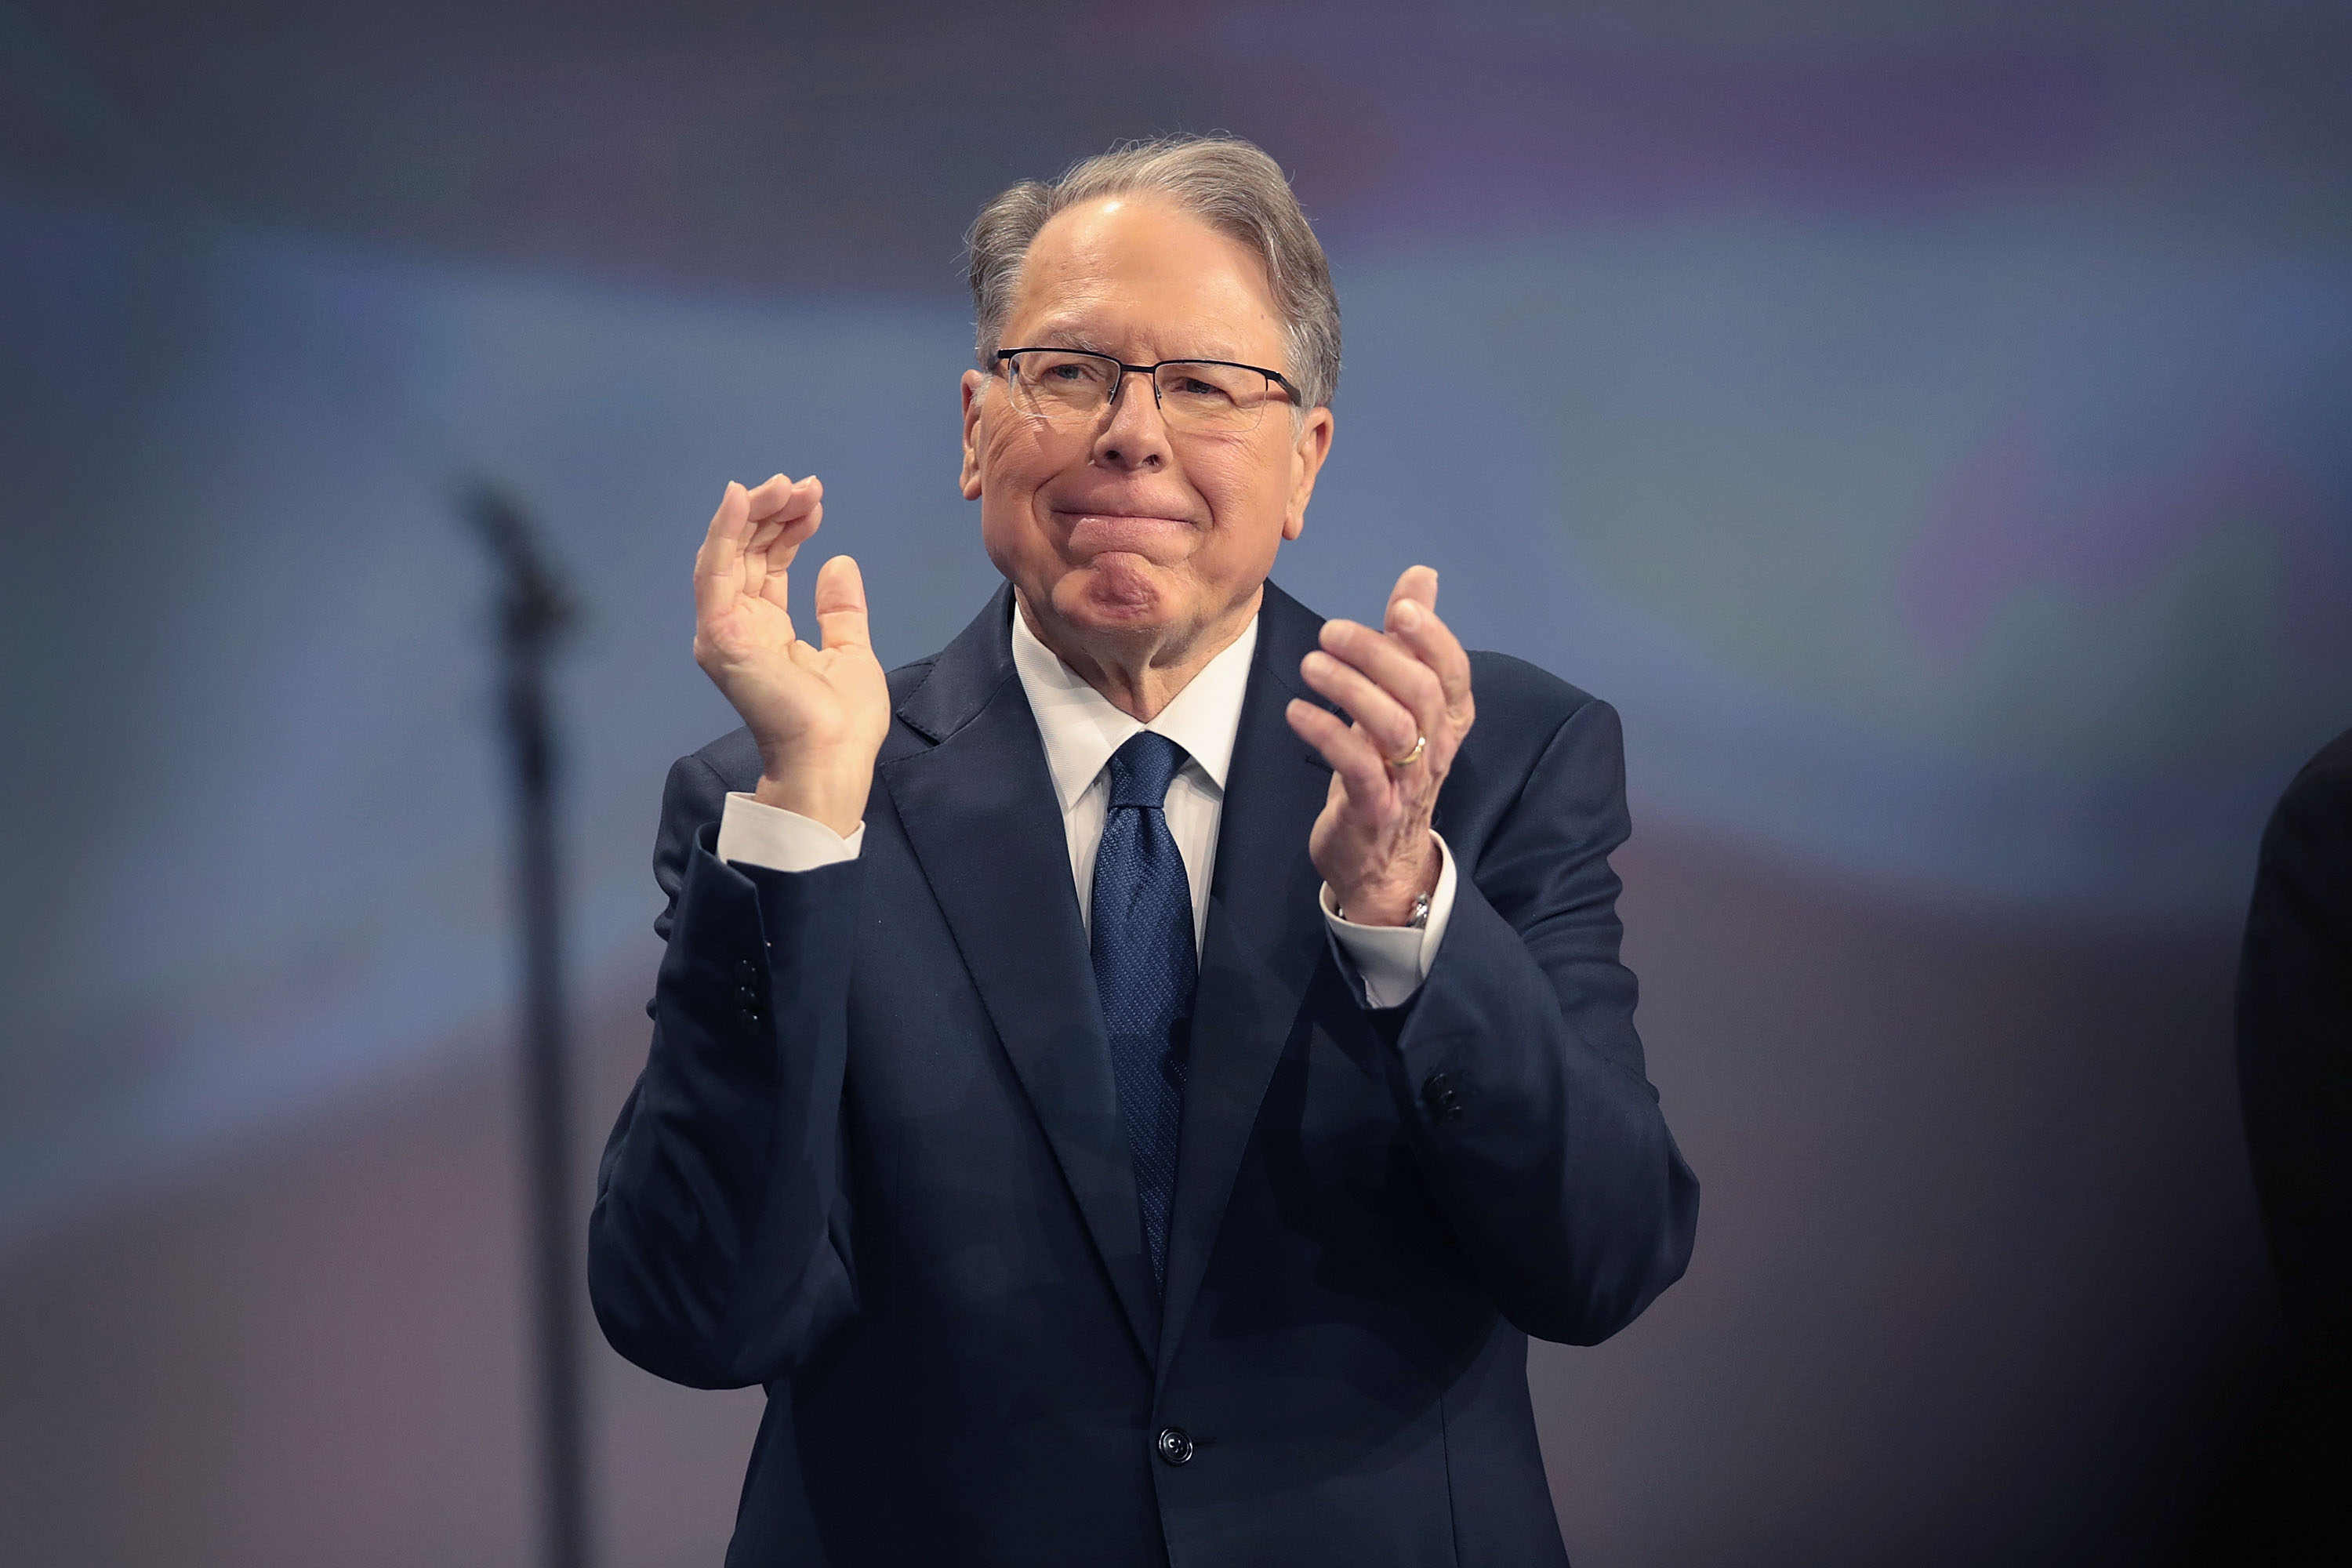 Wayne LaPierre, NRA vice president and CEO attends the NRA annual meeting of members at the 148th NRA Annual Meetings & Exhibits on April 27, 2019 in Indianapolis, Indiana. A statement was read at the meeting announcing that NRA president Oliver North, whose seat at the head table remained empty at the event, would not serve another term. There have been recent reports of tension between LaPierre and North, with North citing financial impropriety within the organization. (Photo by Scott Olson/Getty Images)